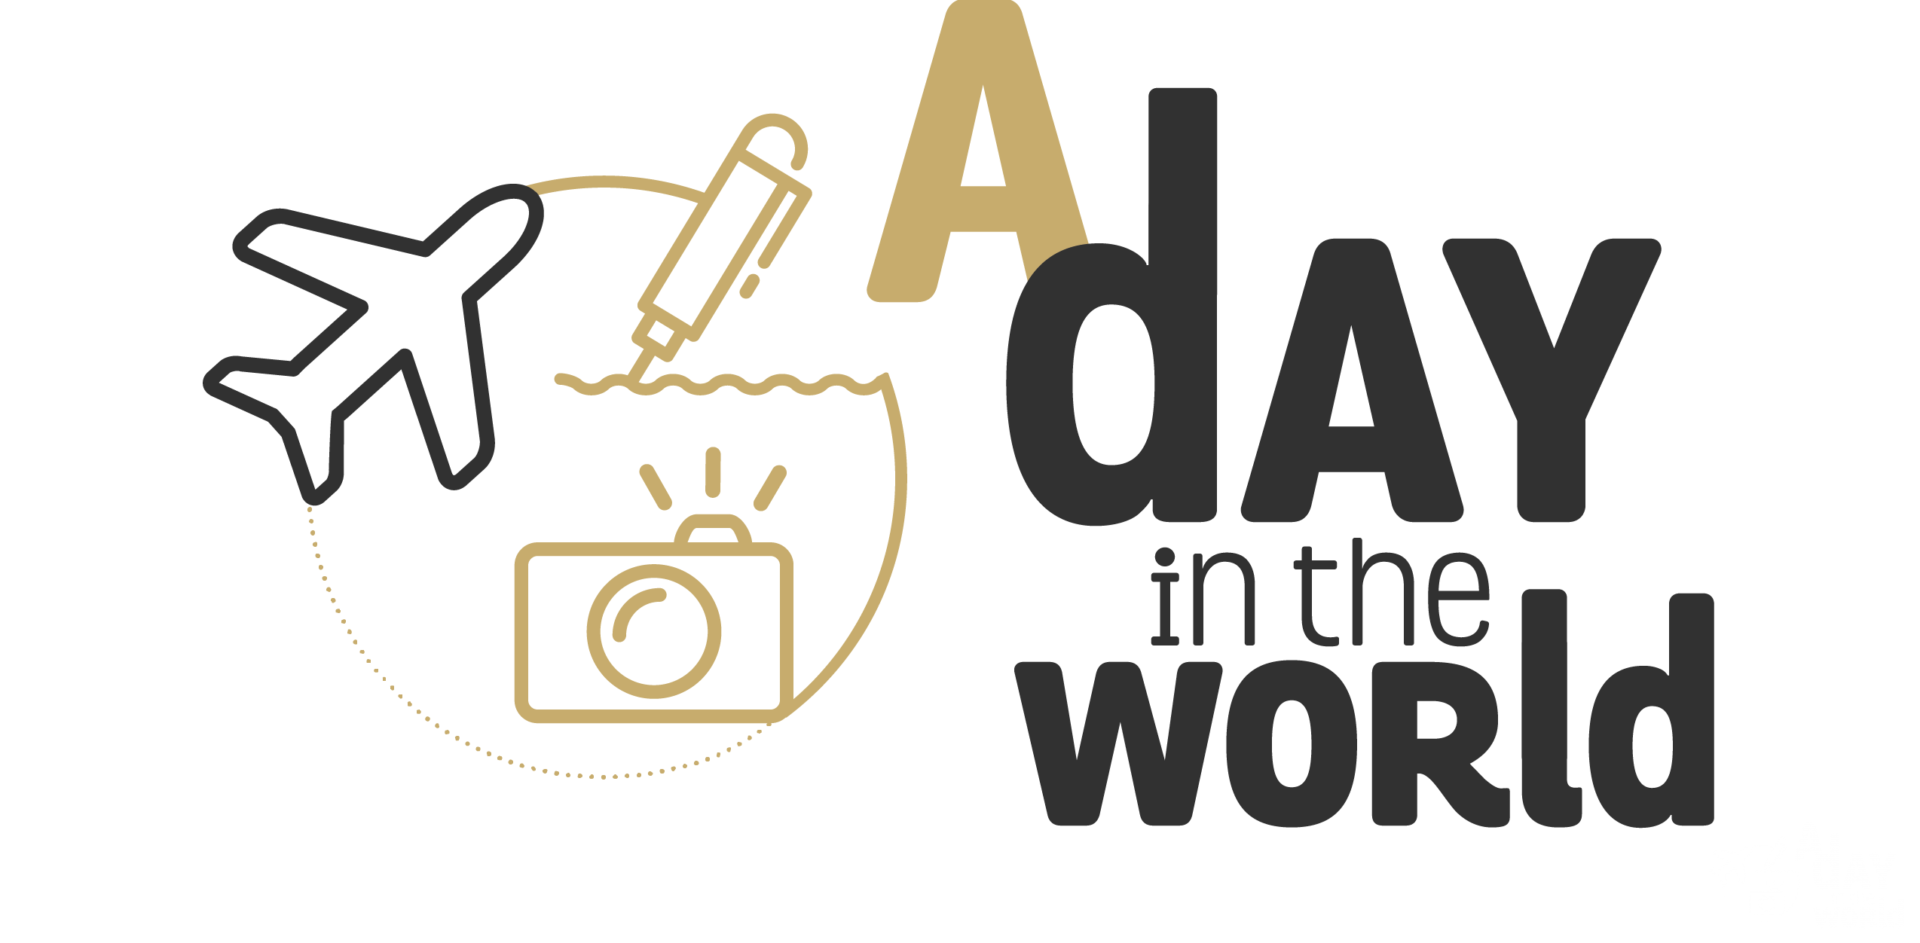 A day in the world - Blog voyage